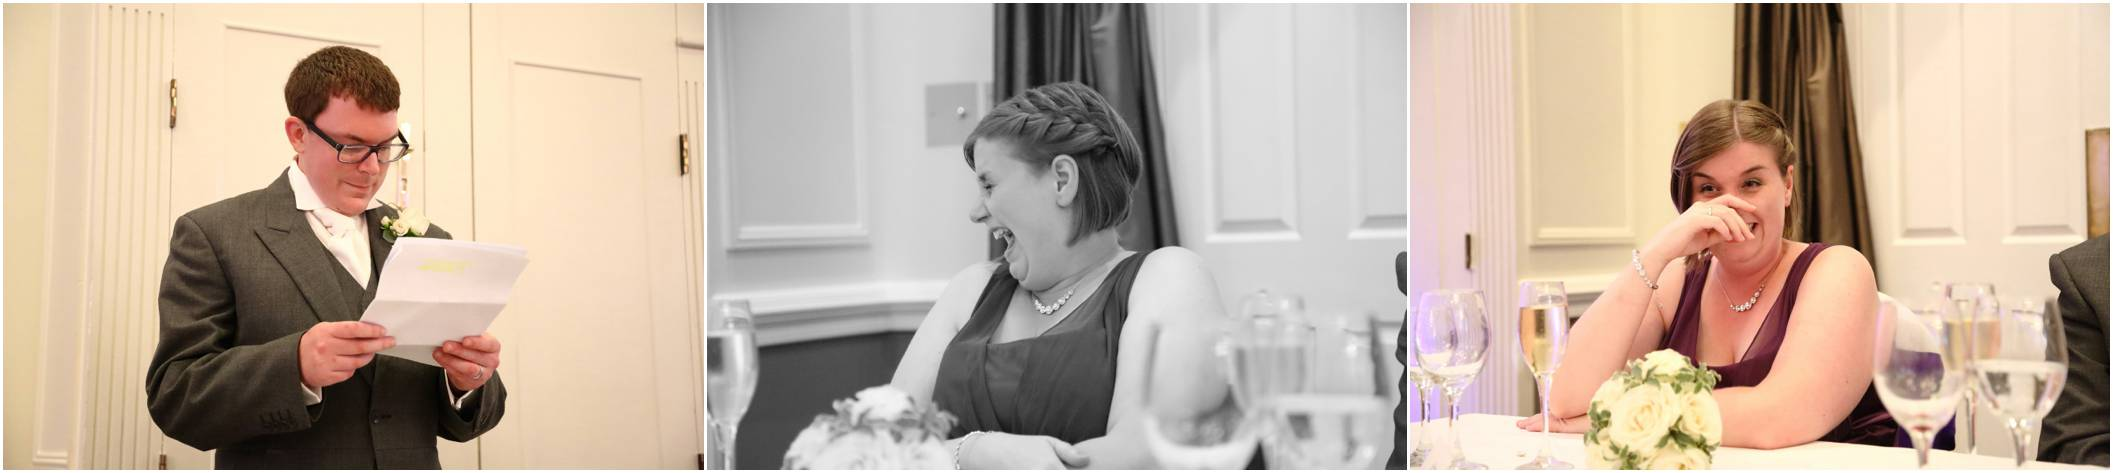 bedford-lodge-wedding-photography-newmarket_0026